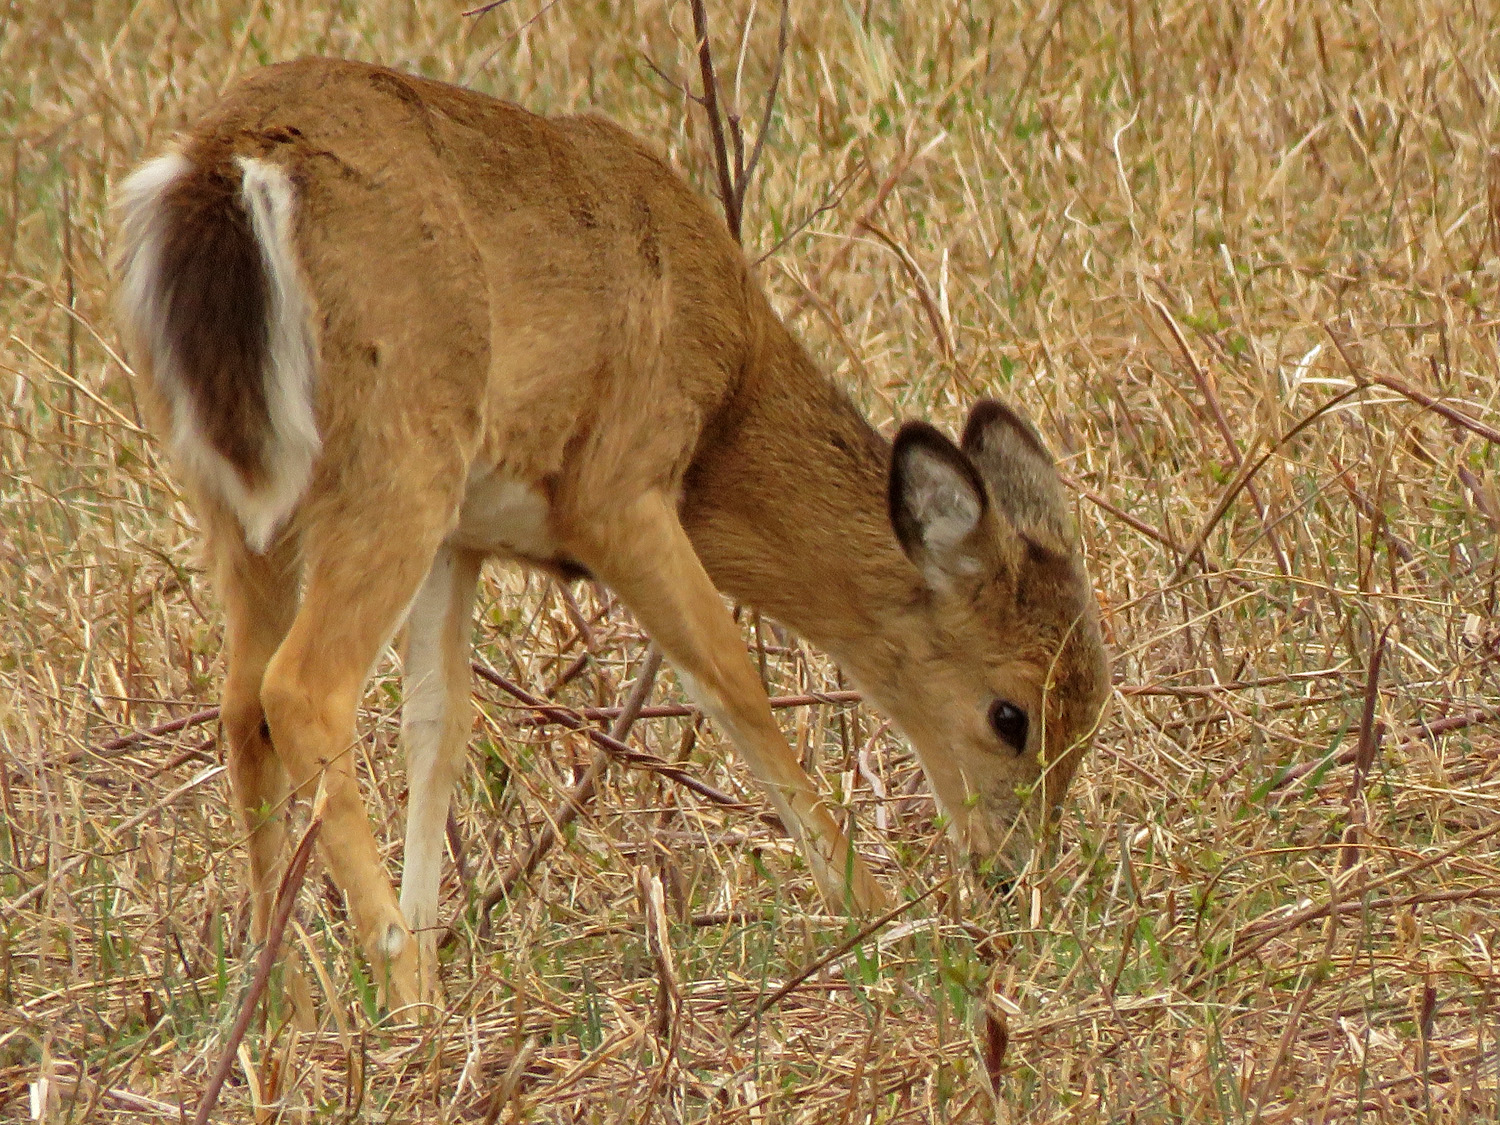 White-tailed deer, MLUA, April 2, 2019